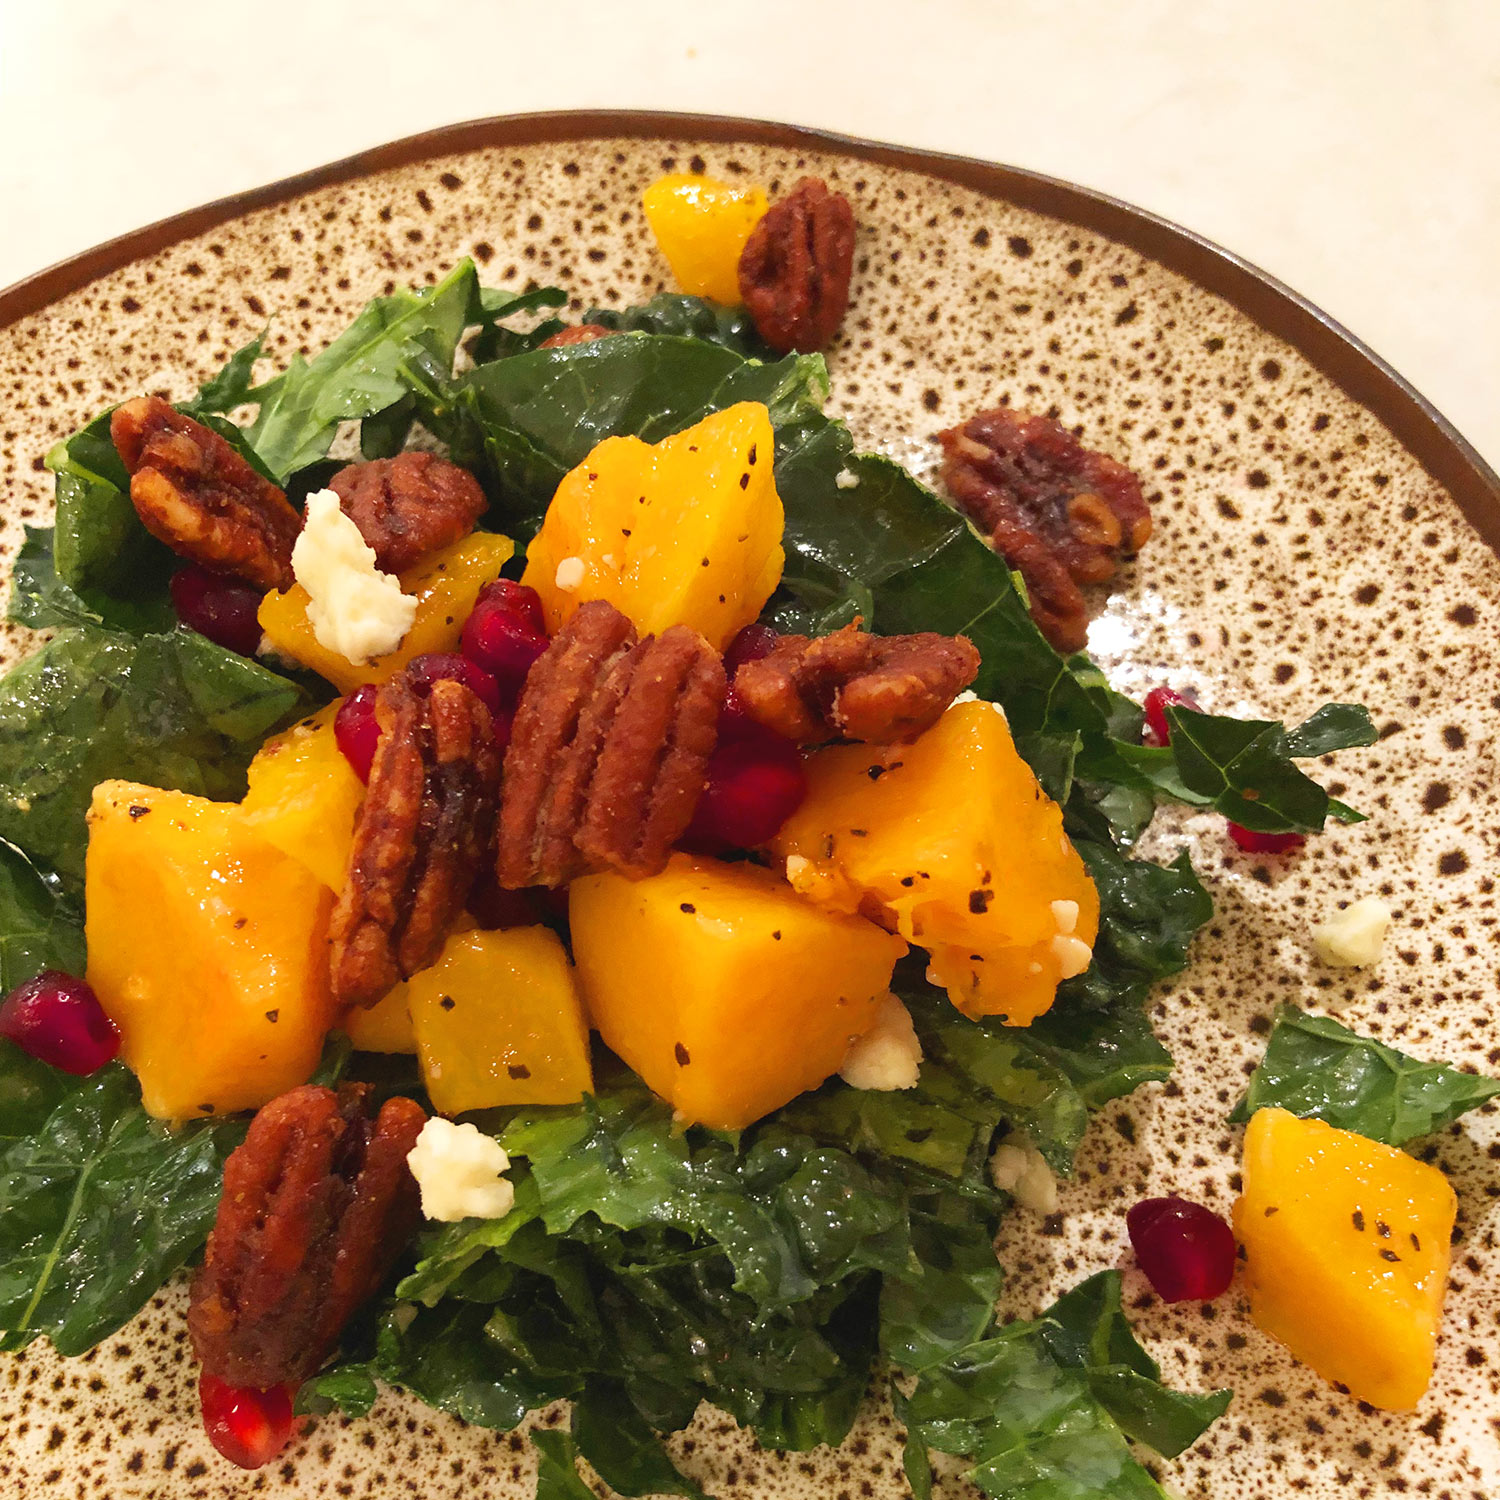 Kale-and-Butternut-Squash-Salad.jpg